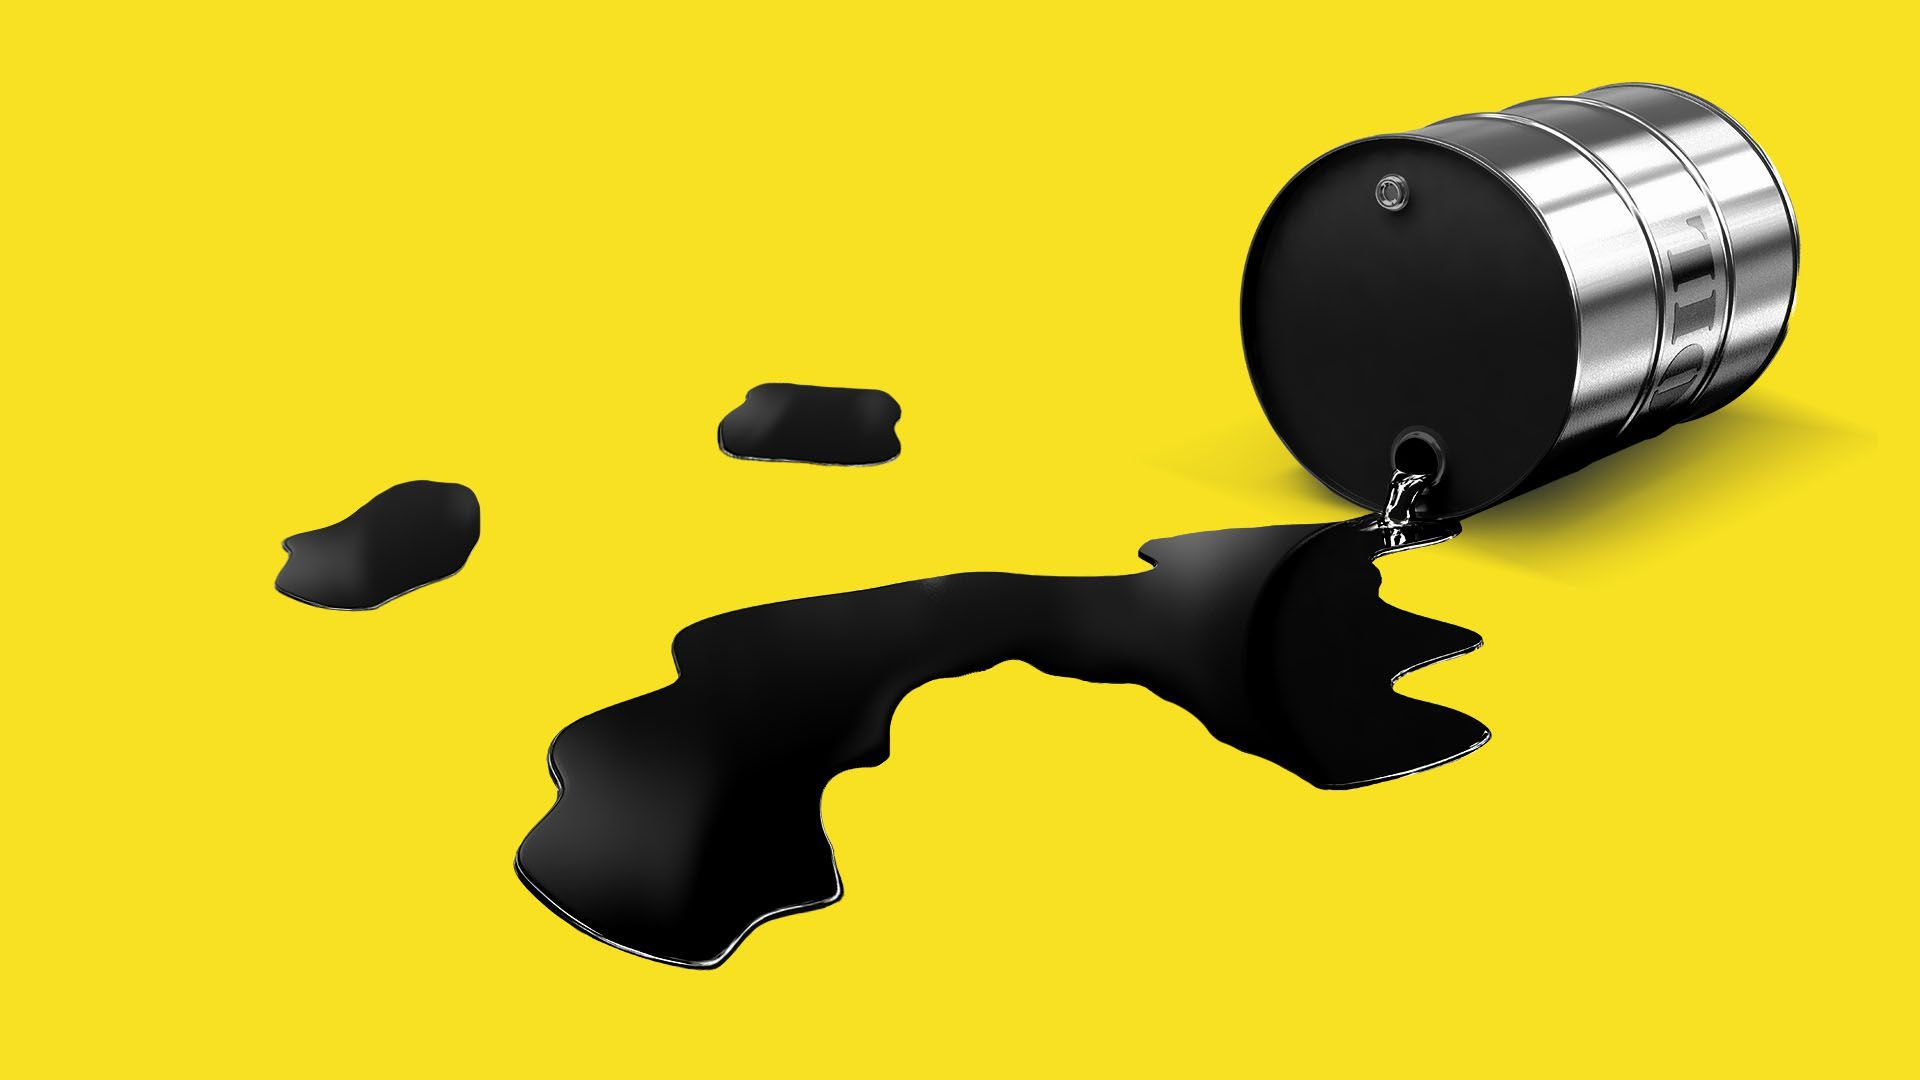 An illustration of an oil tank that has been tipped over and oil is spilling out of it. A yellow background.